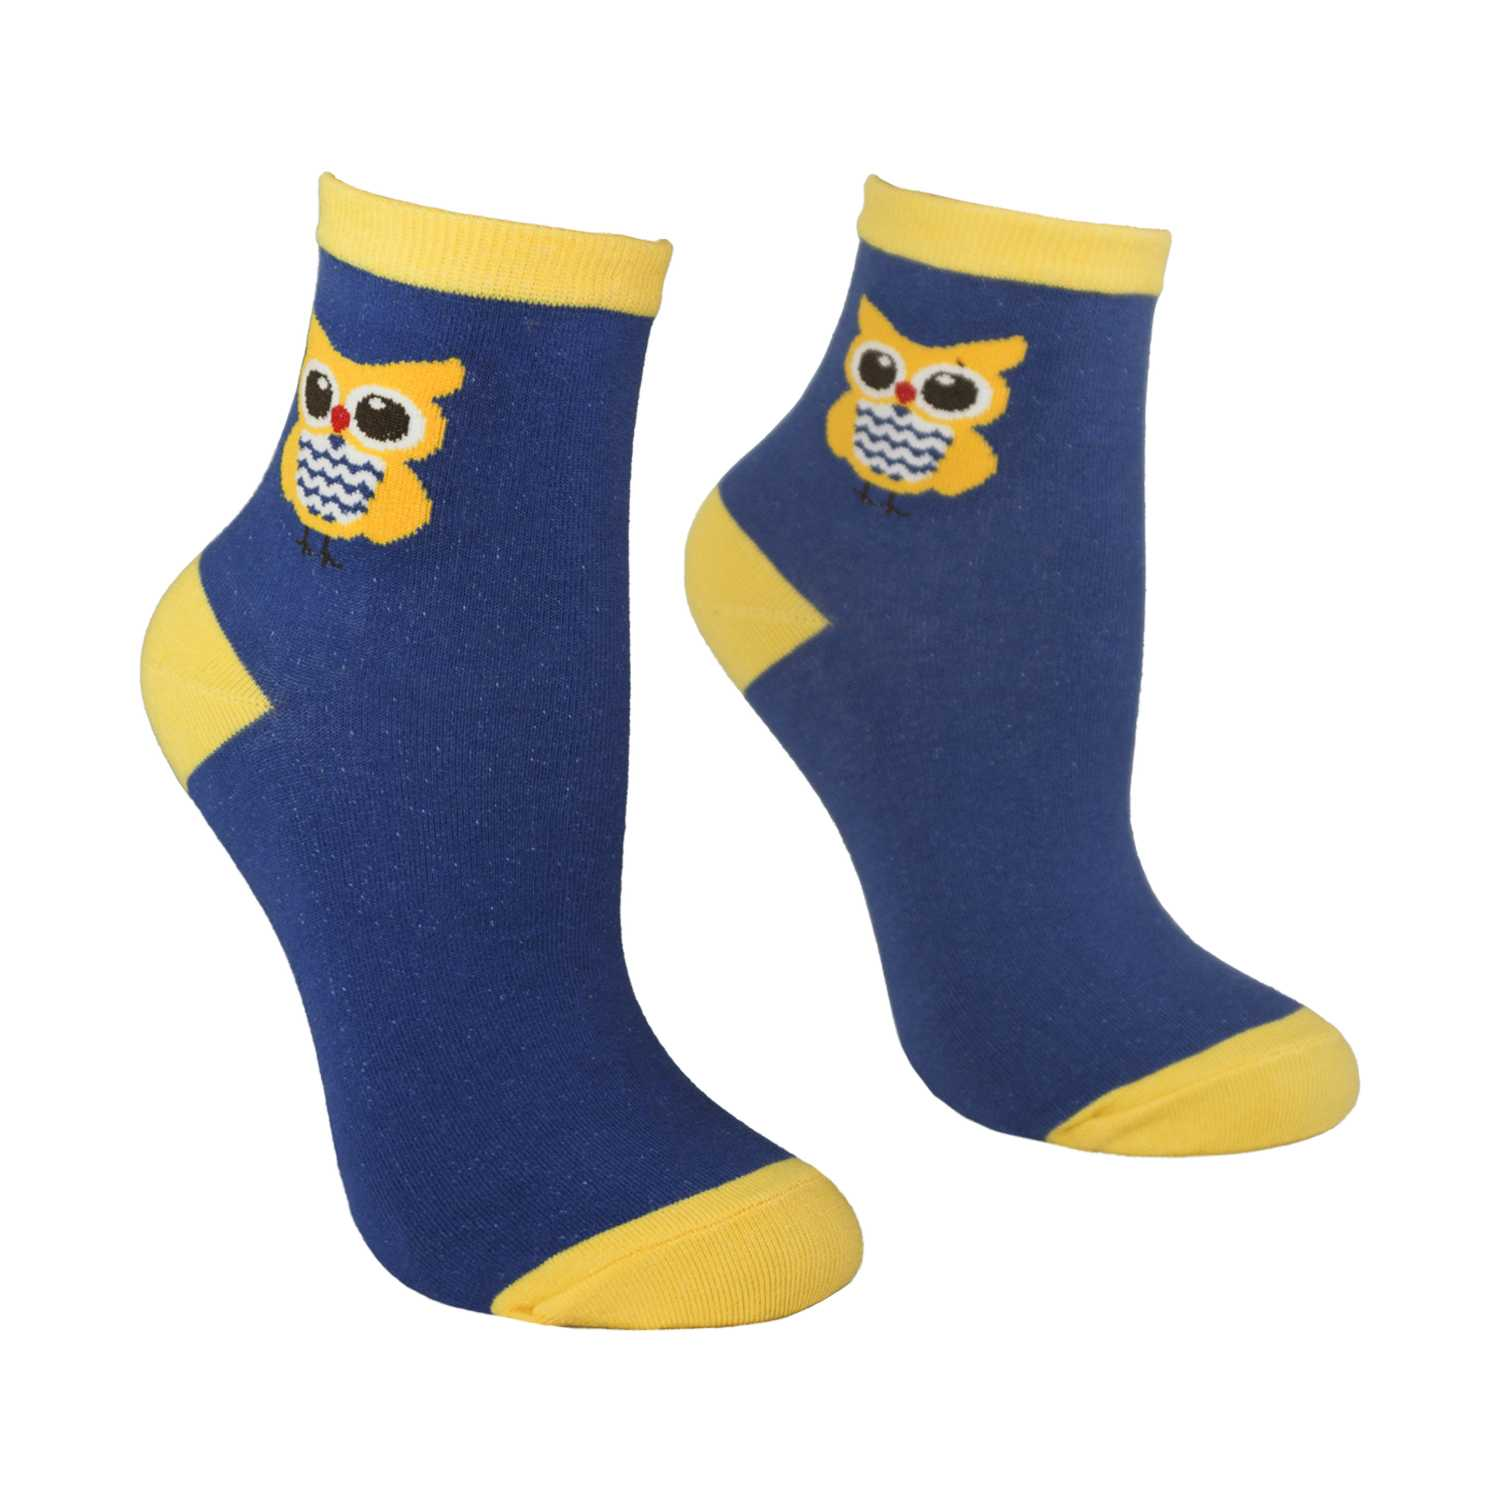 Women's Owl Design Crew Socks - Navy - Zestique